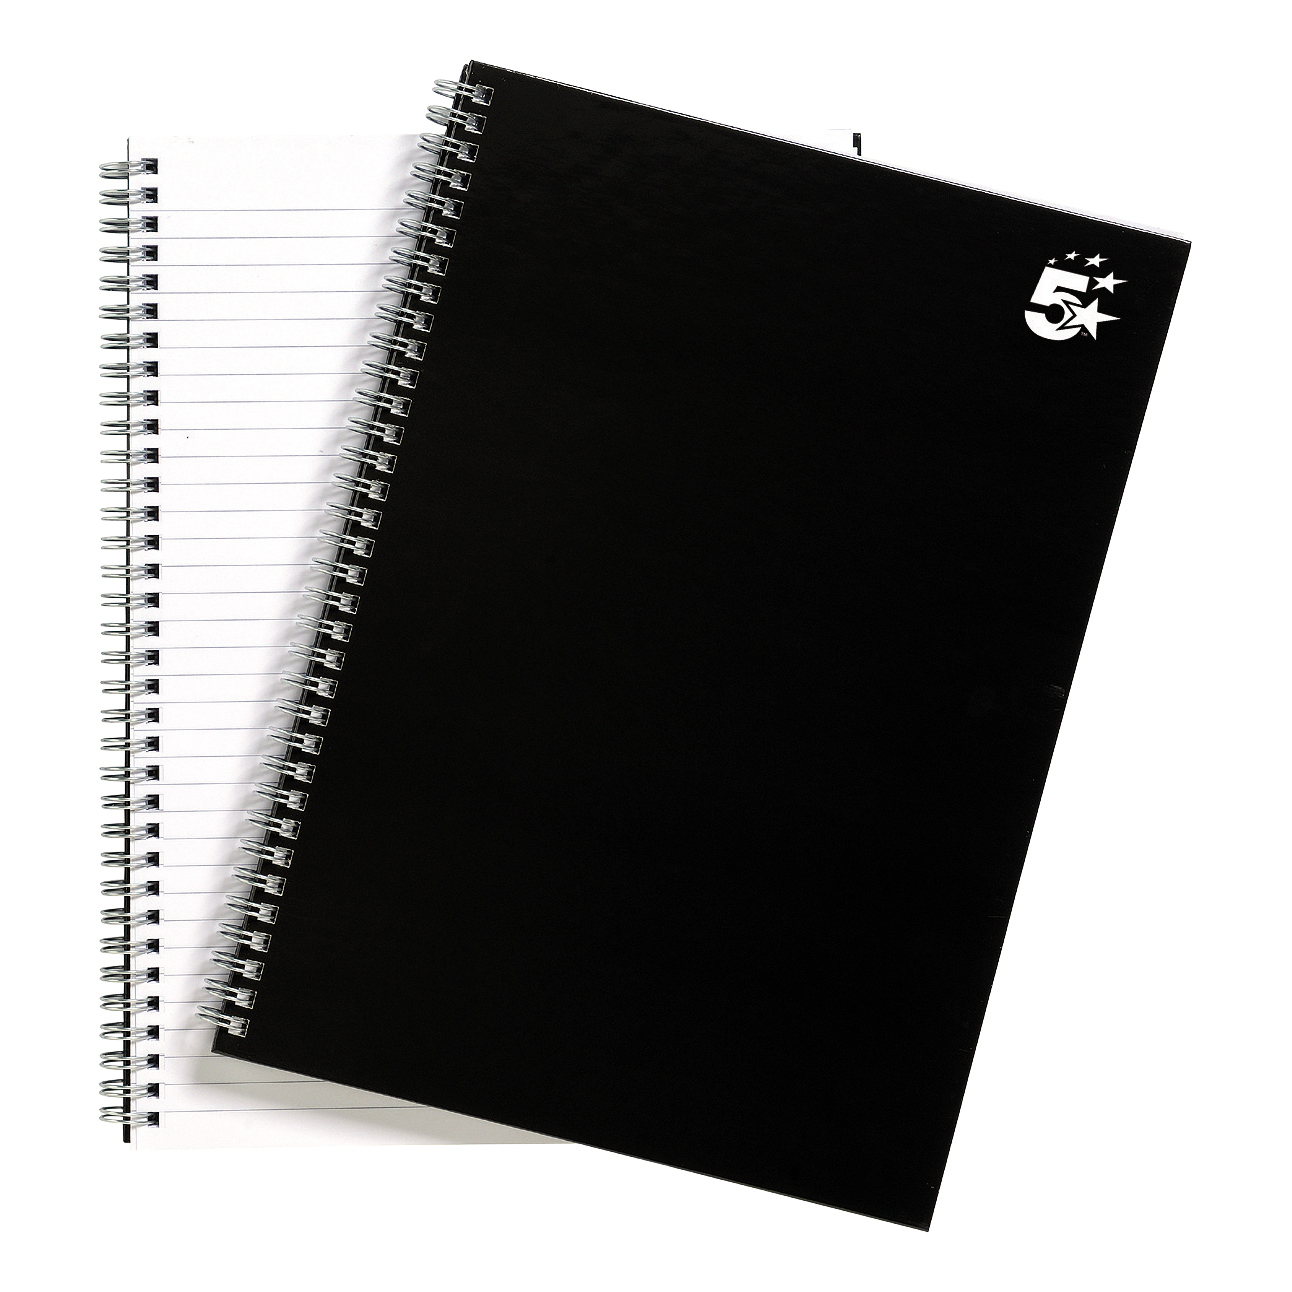 5 Star Office Notebook Wirebound 80gsm Ruled 140pp A4 Black [Pack 5]